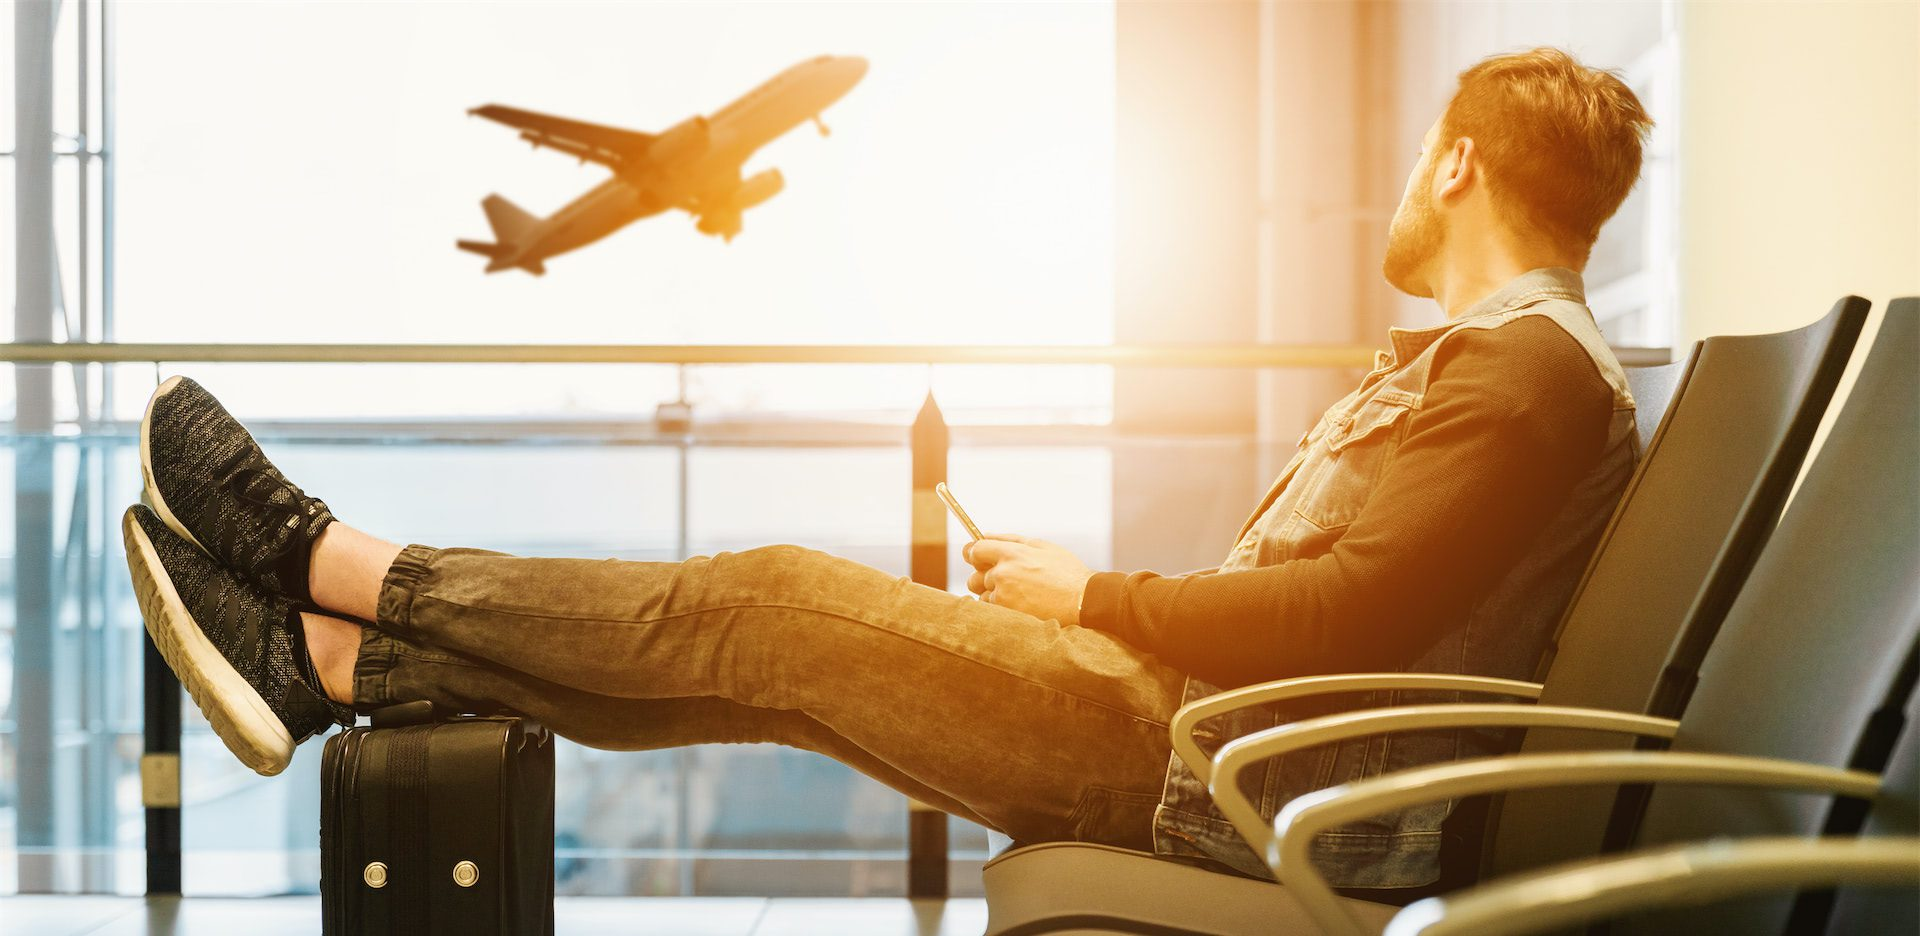 traveller in airport image